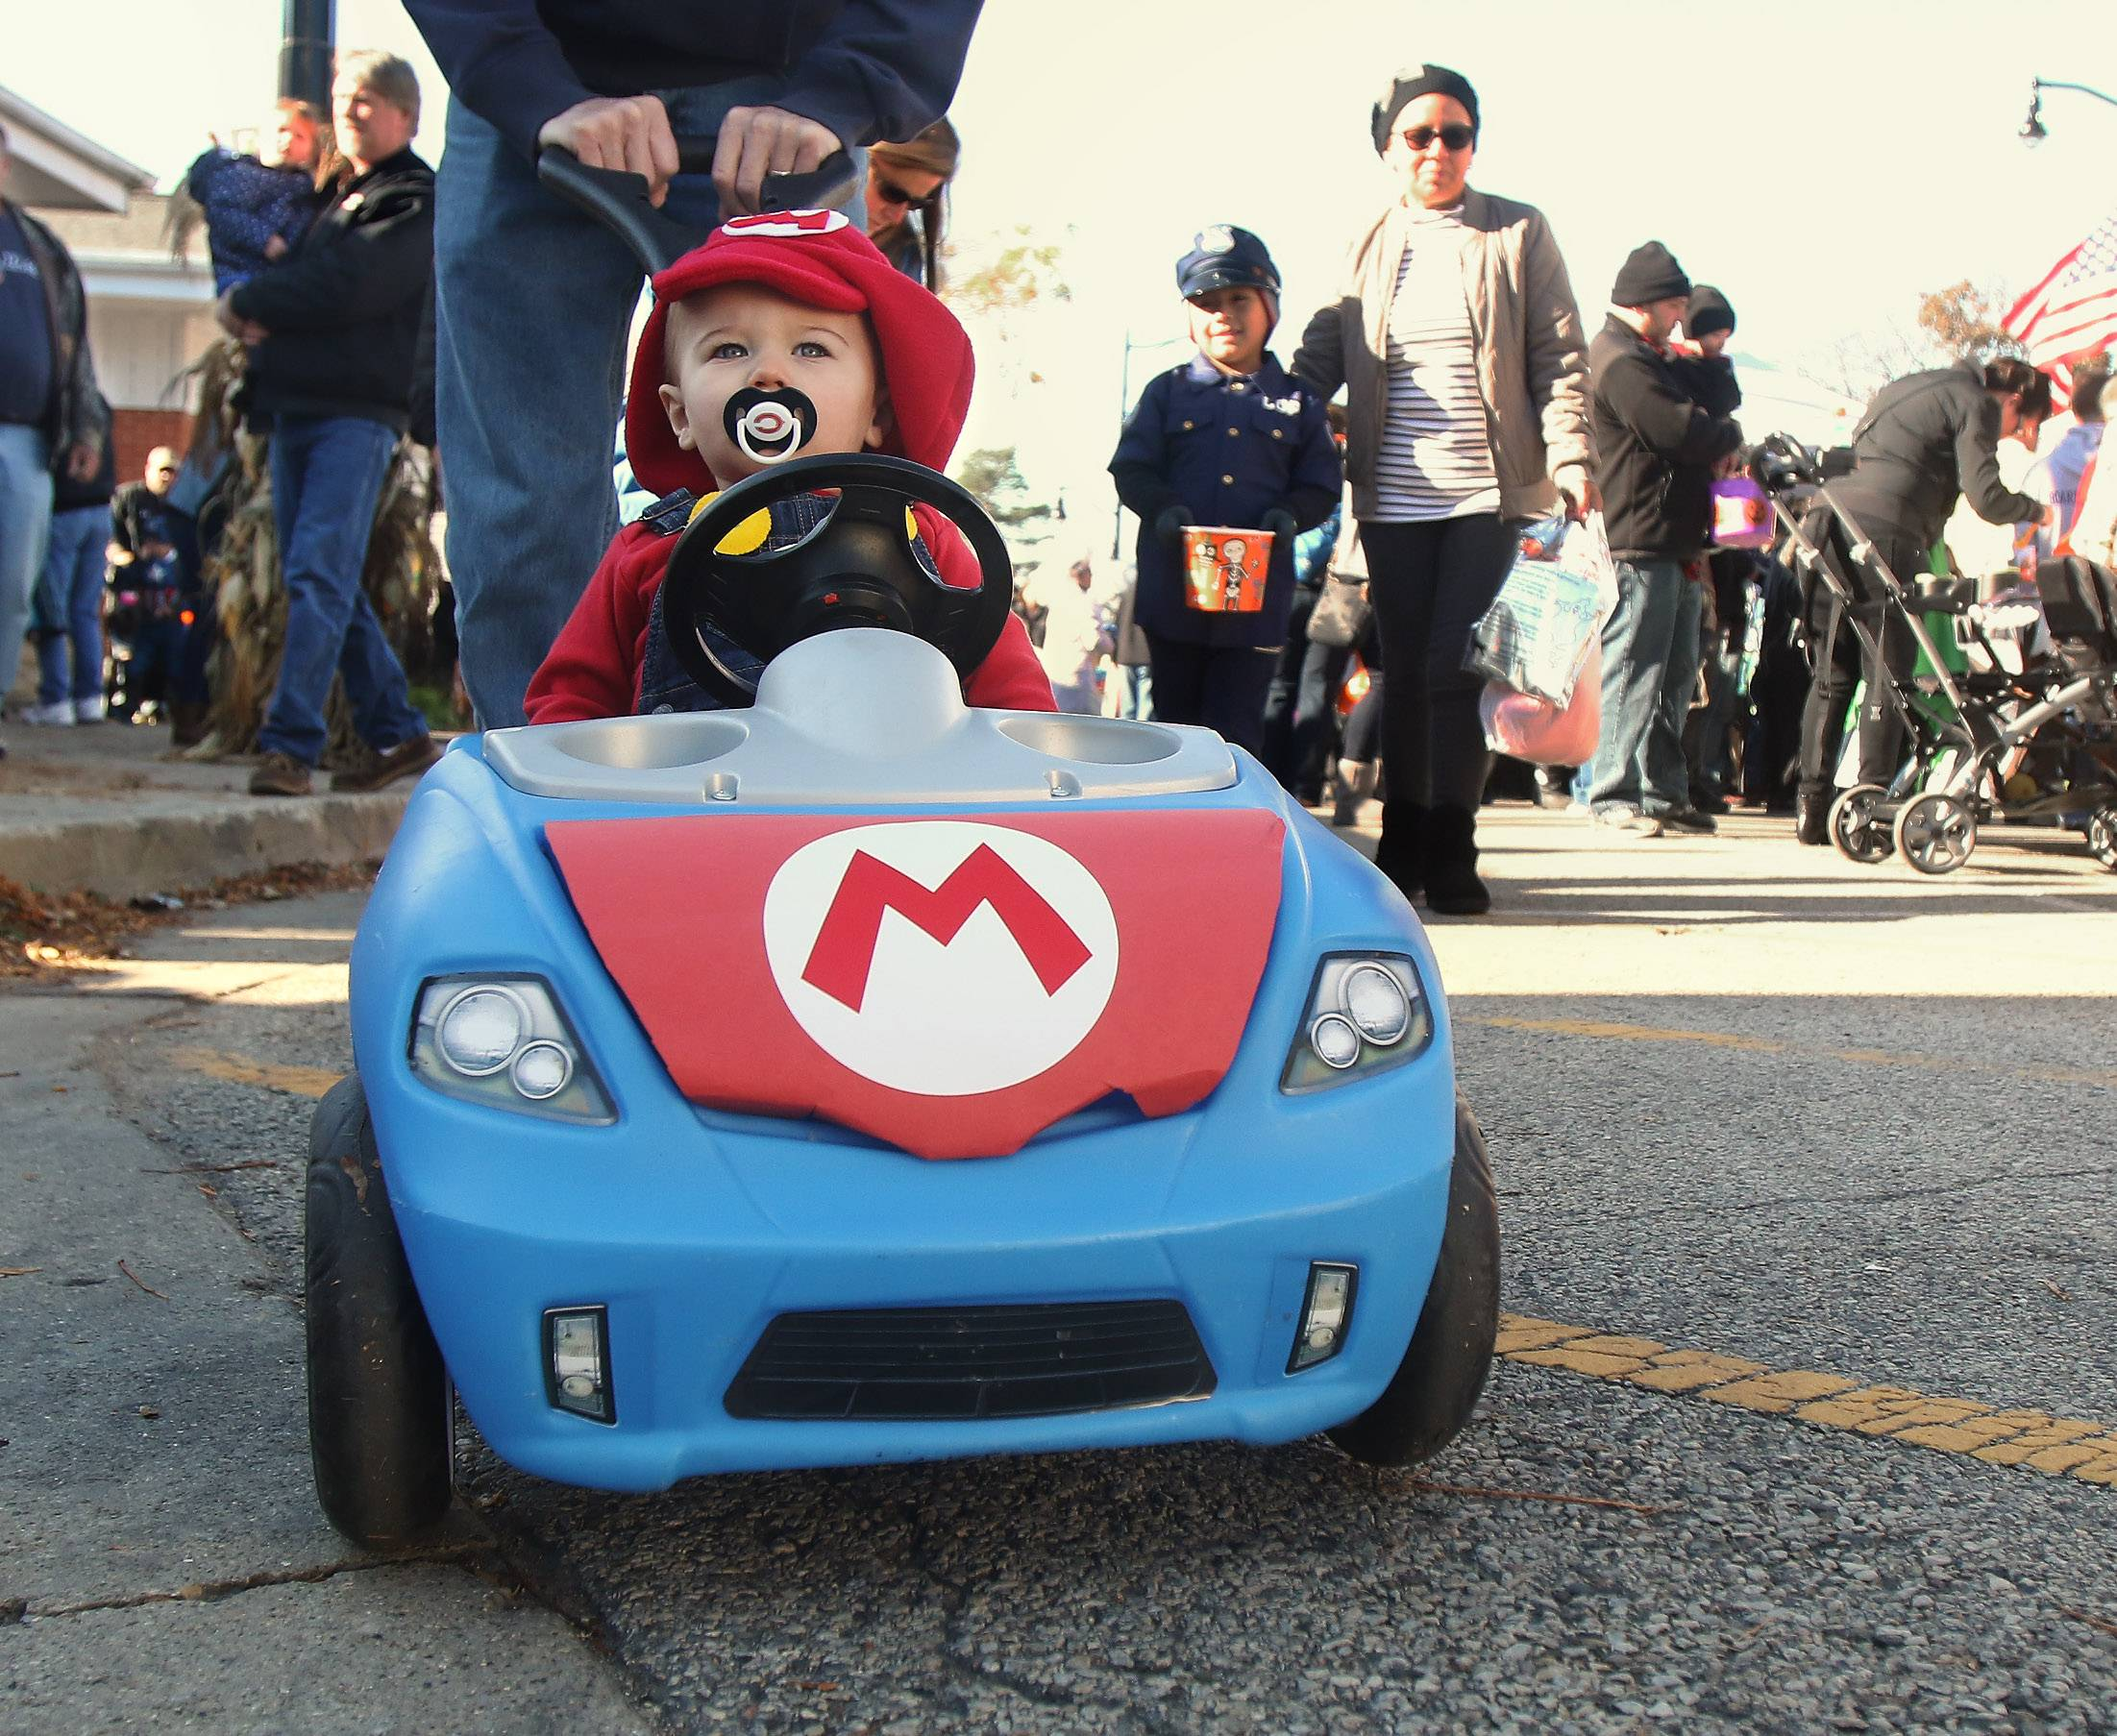 One-year-old Logan Gibson of Wauconda, dressed as Mario, gets a little help driving his car from his grandfather, Russ Slabaugh, during Wauconda's Trick or Treat on Main Street Sunday.